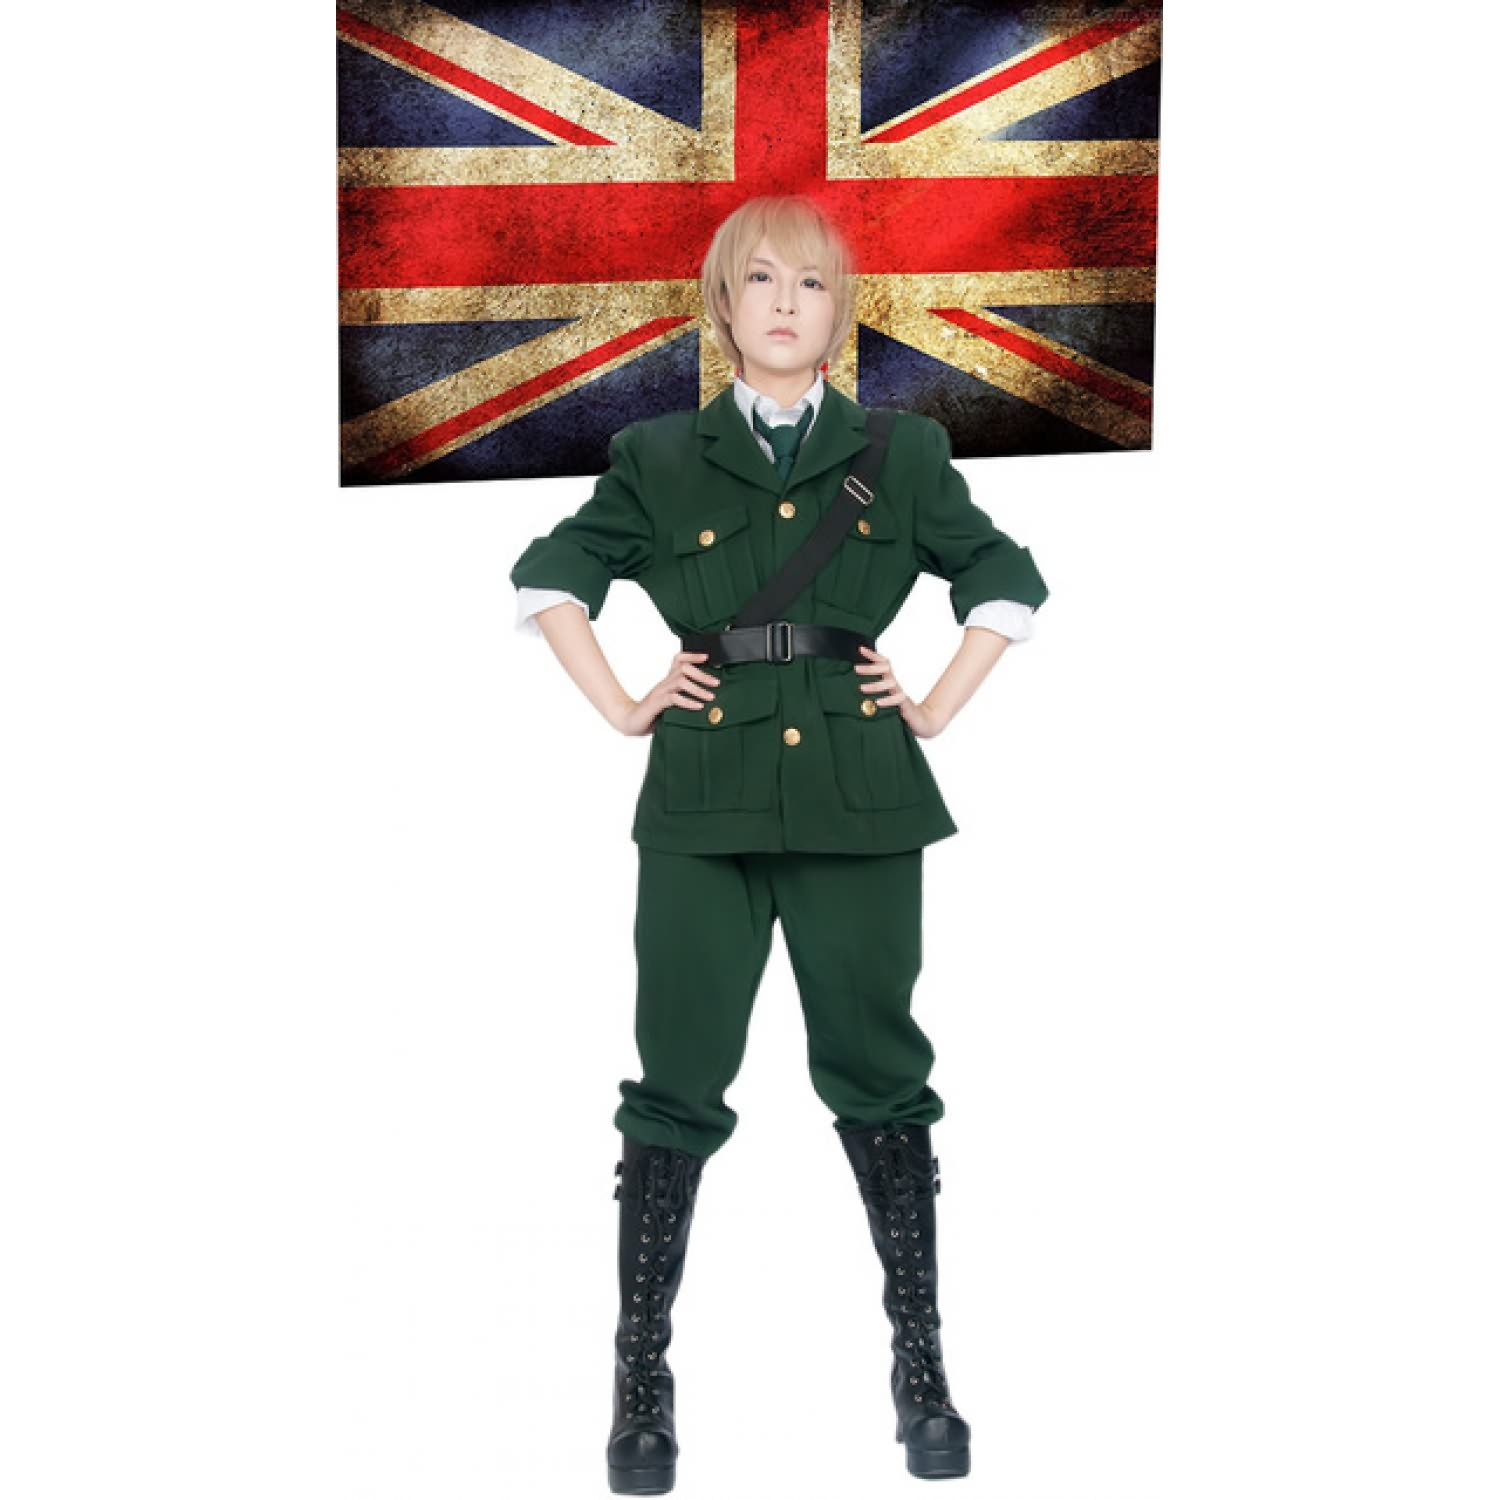 Axis Powers Hetalia England Arthur Kirkland Uniform Cosplay Costume